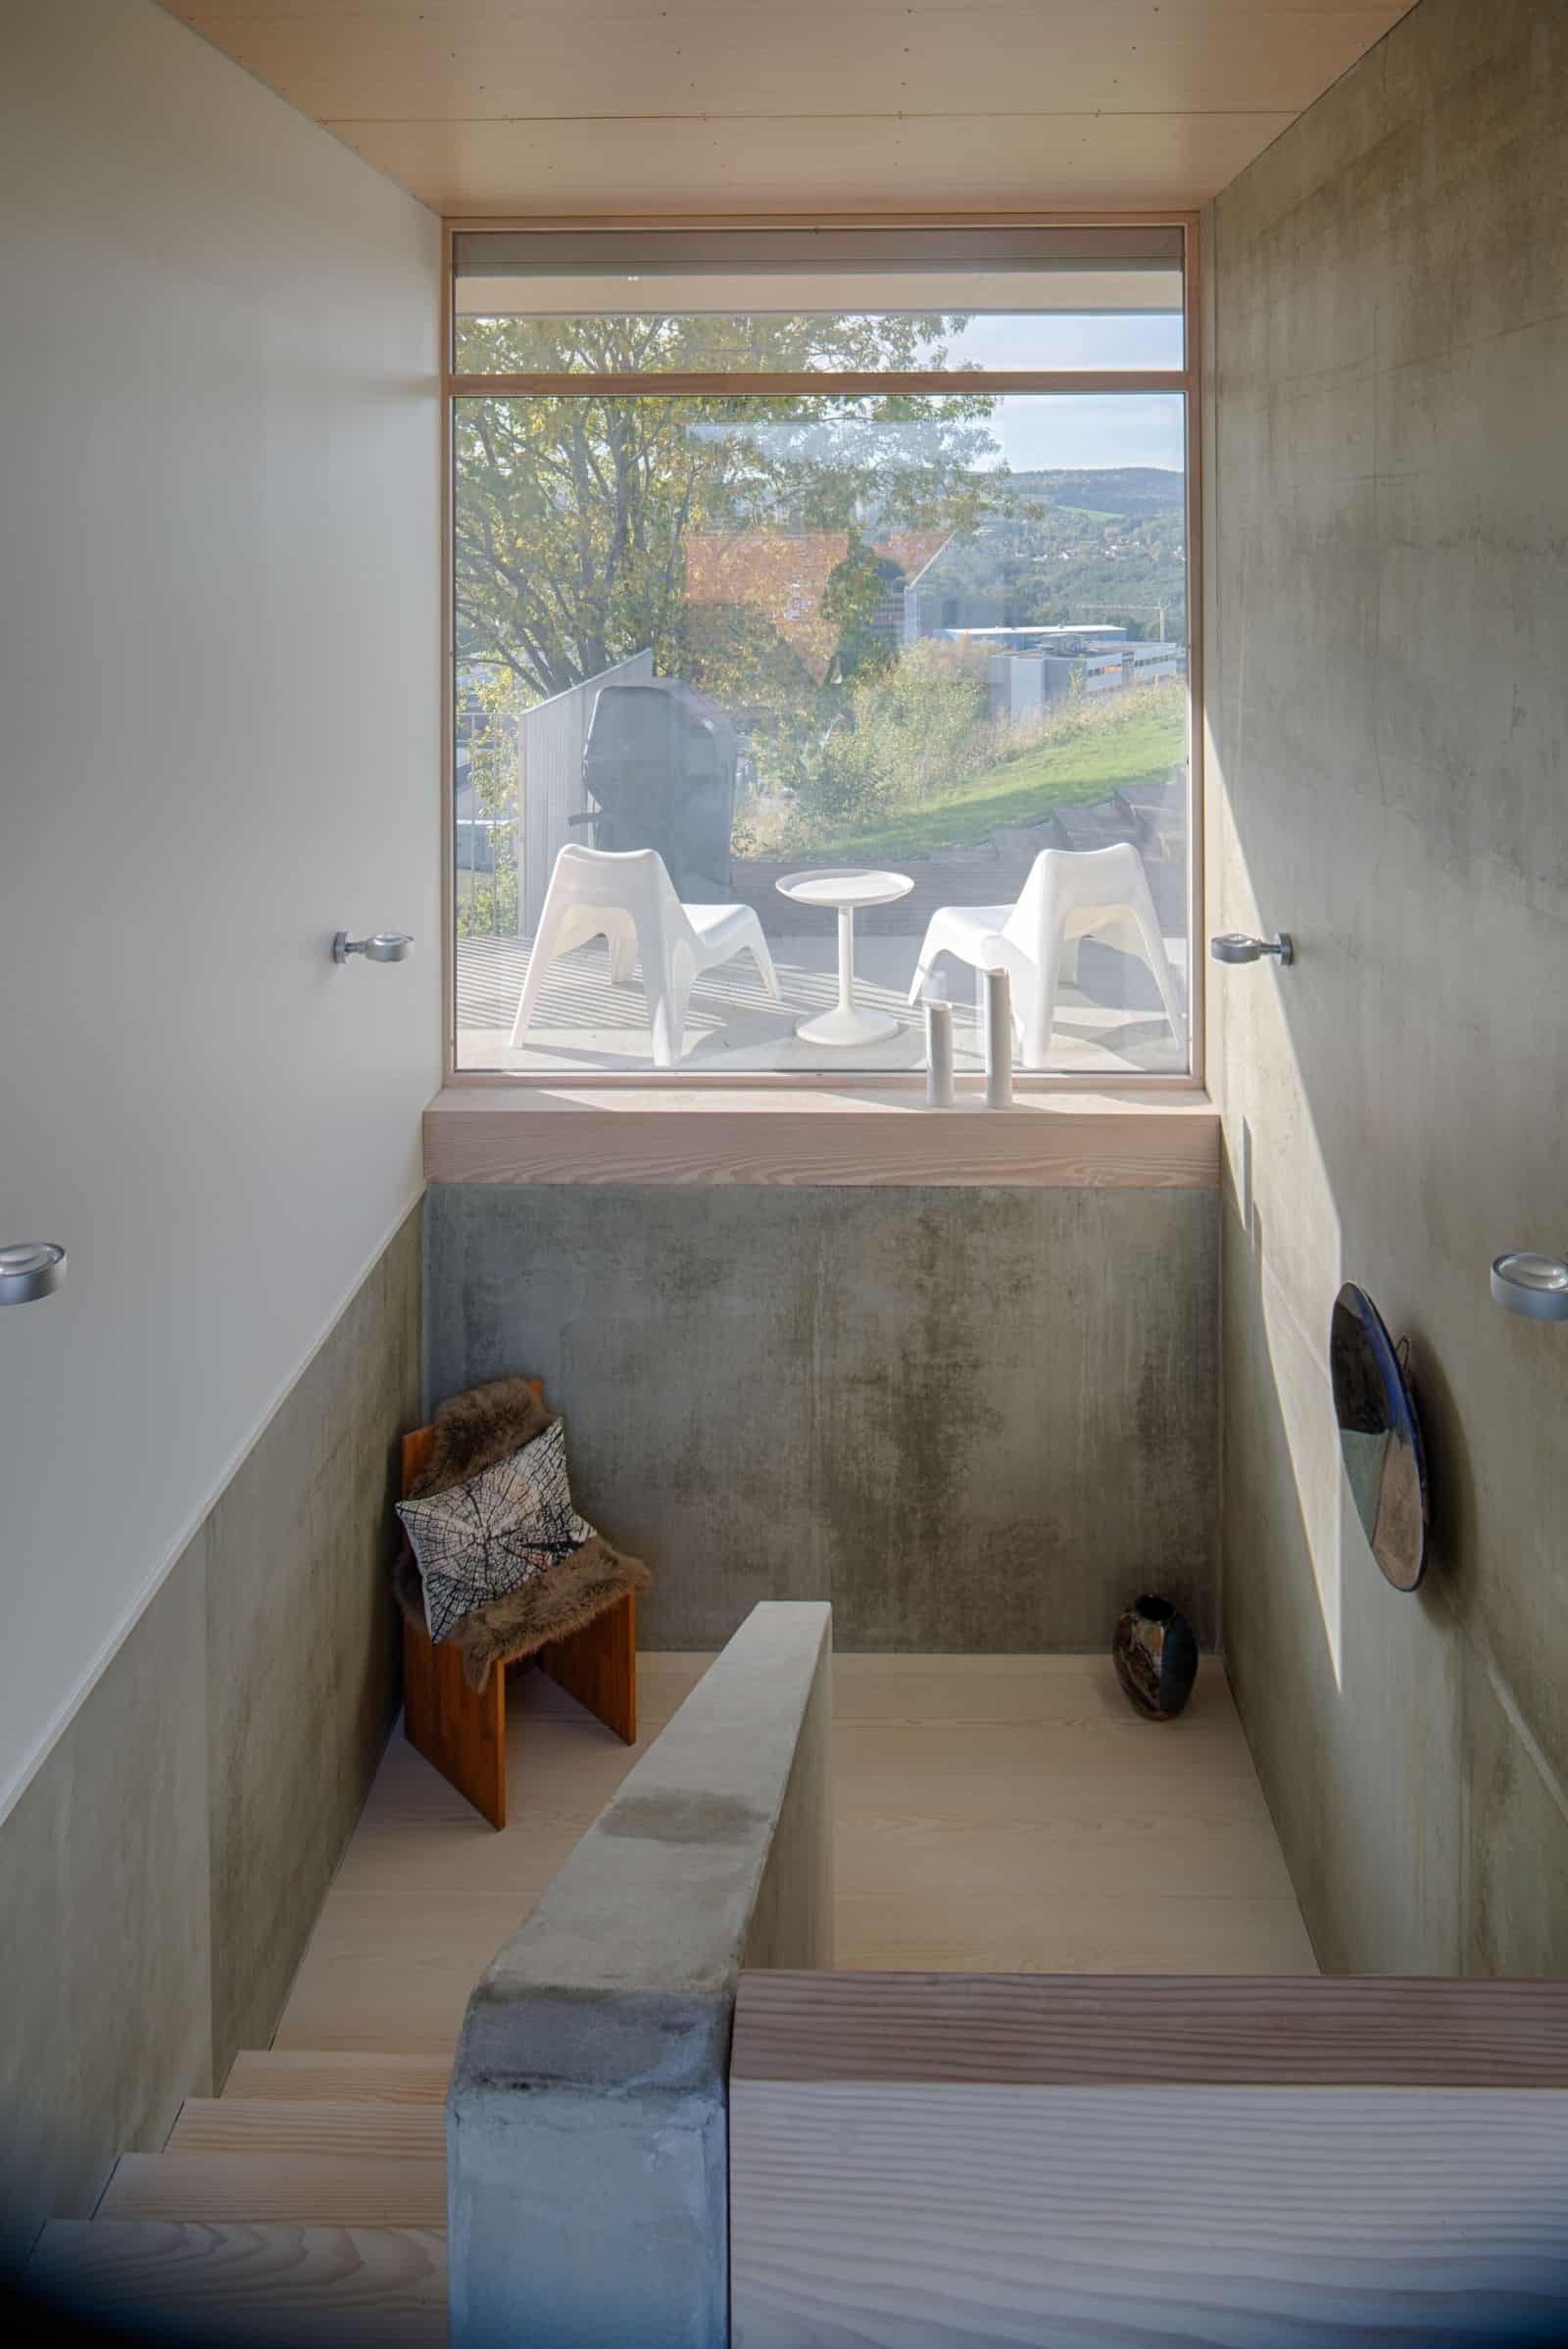 Typical landing with concrete handrail, small chair and a fixed glass window, giving access to natural light.